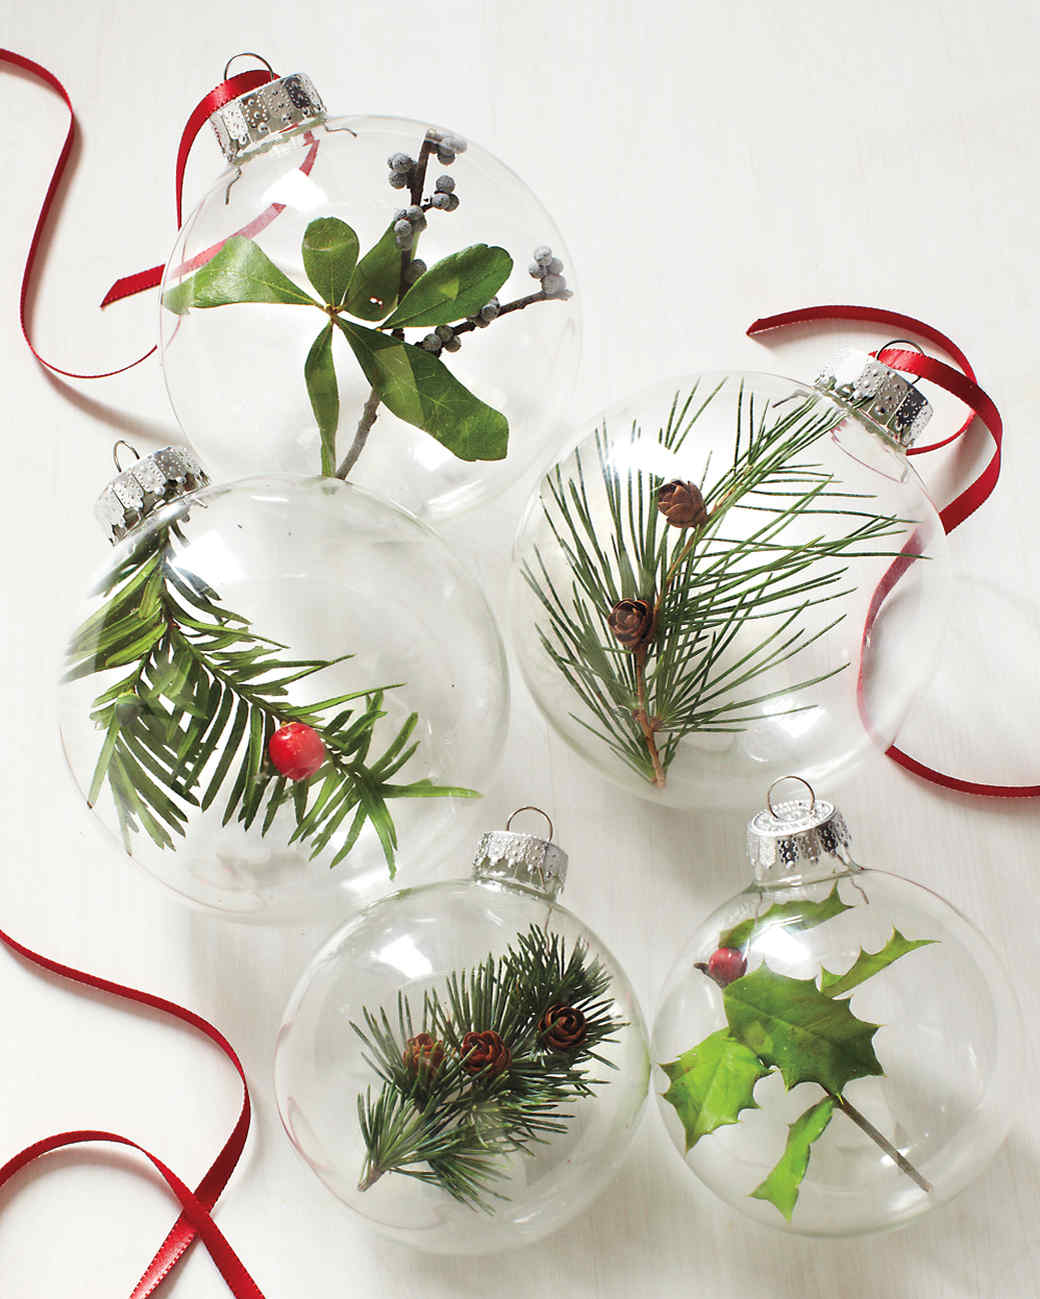 Diy christmas ornament projects martha stewart for Homemade tree decorations